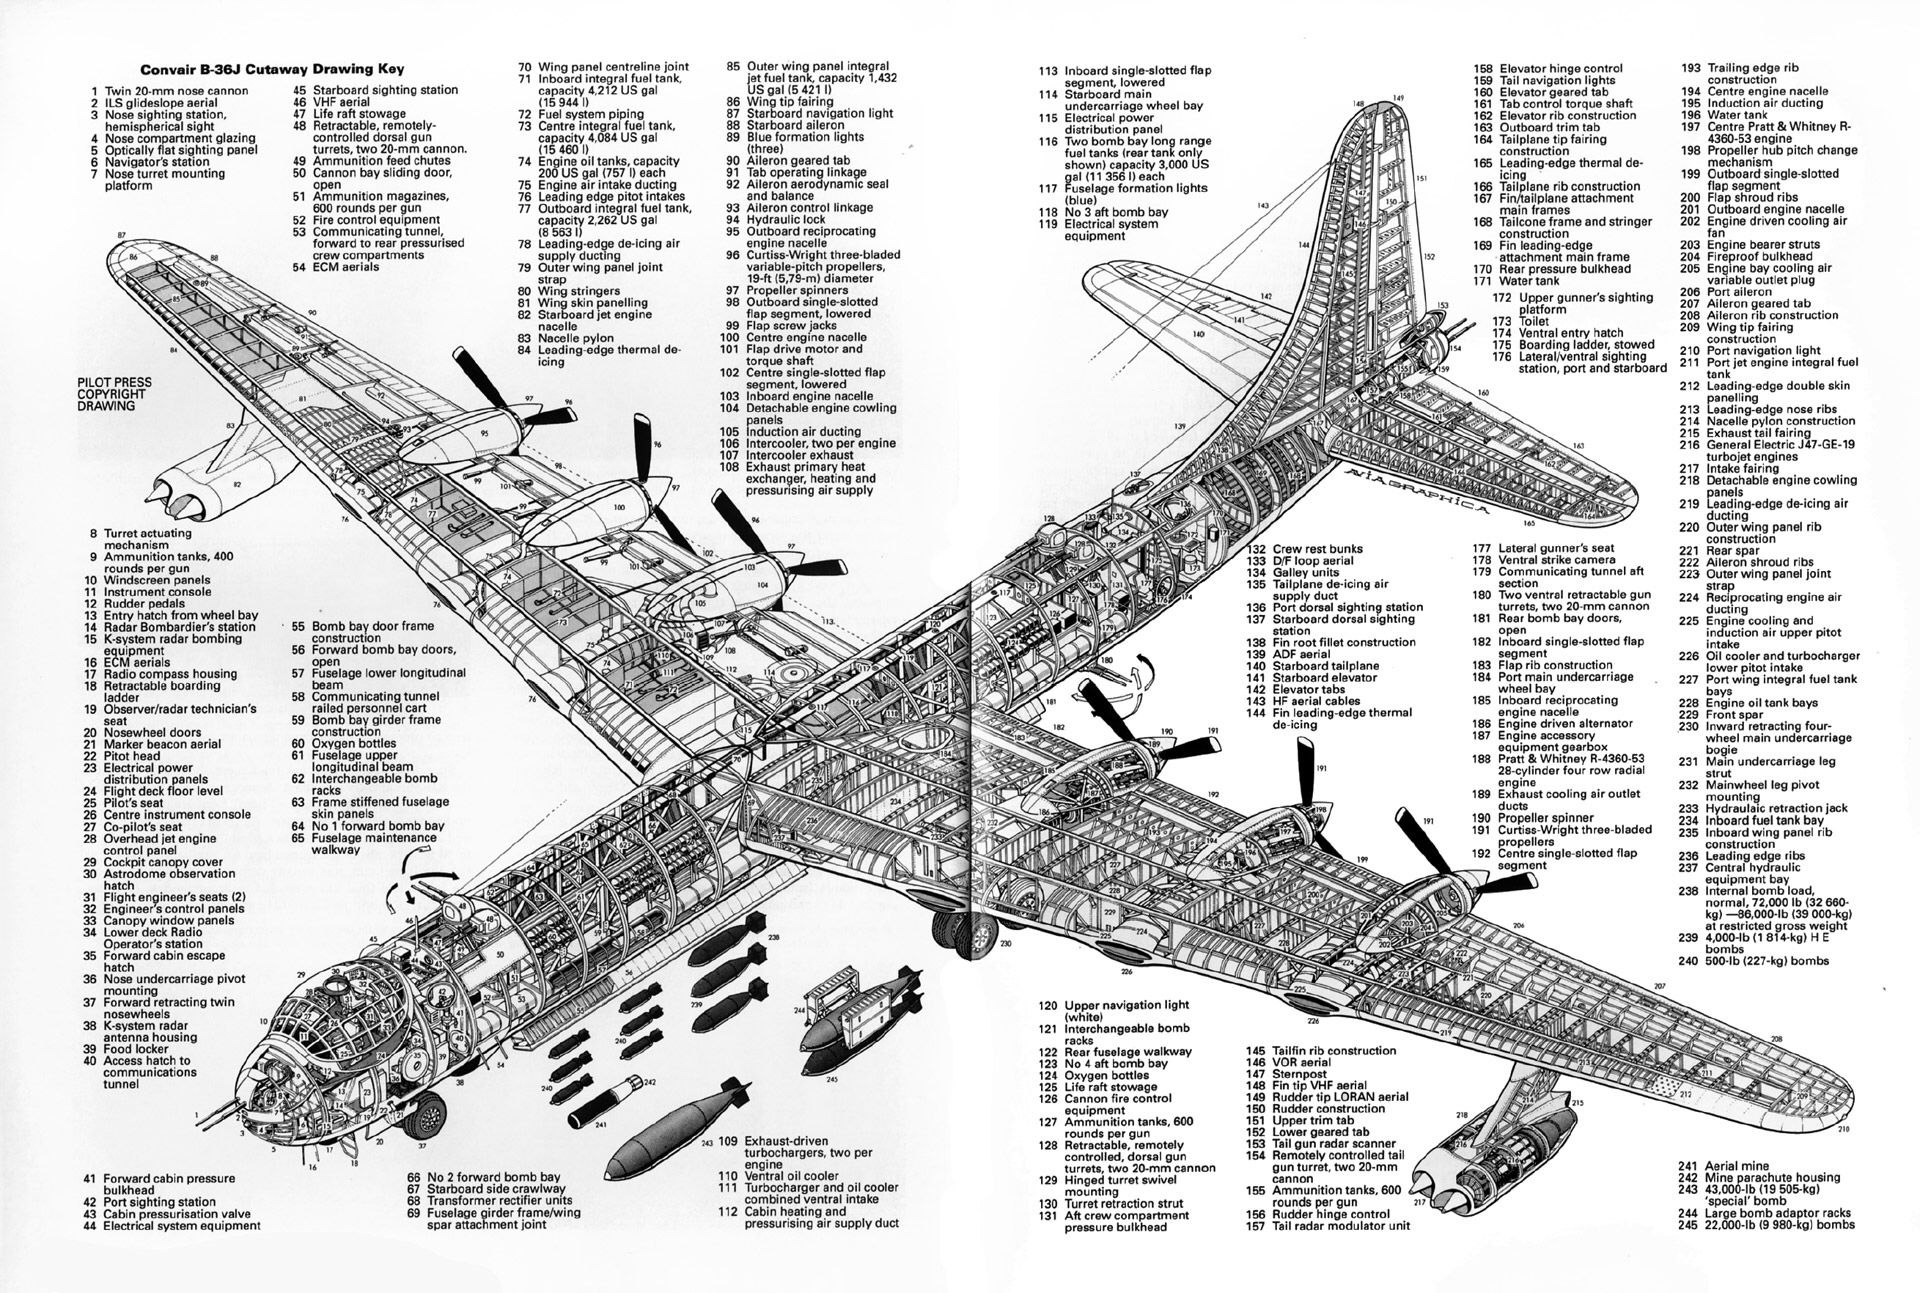 Pin By Lorin Rivers On Cool Images Aircraft Cutaway Aircraft Design